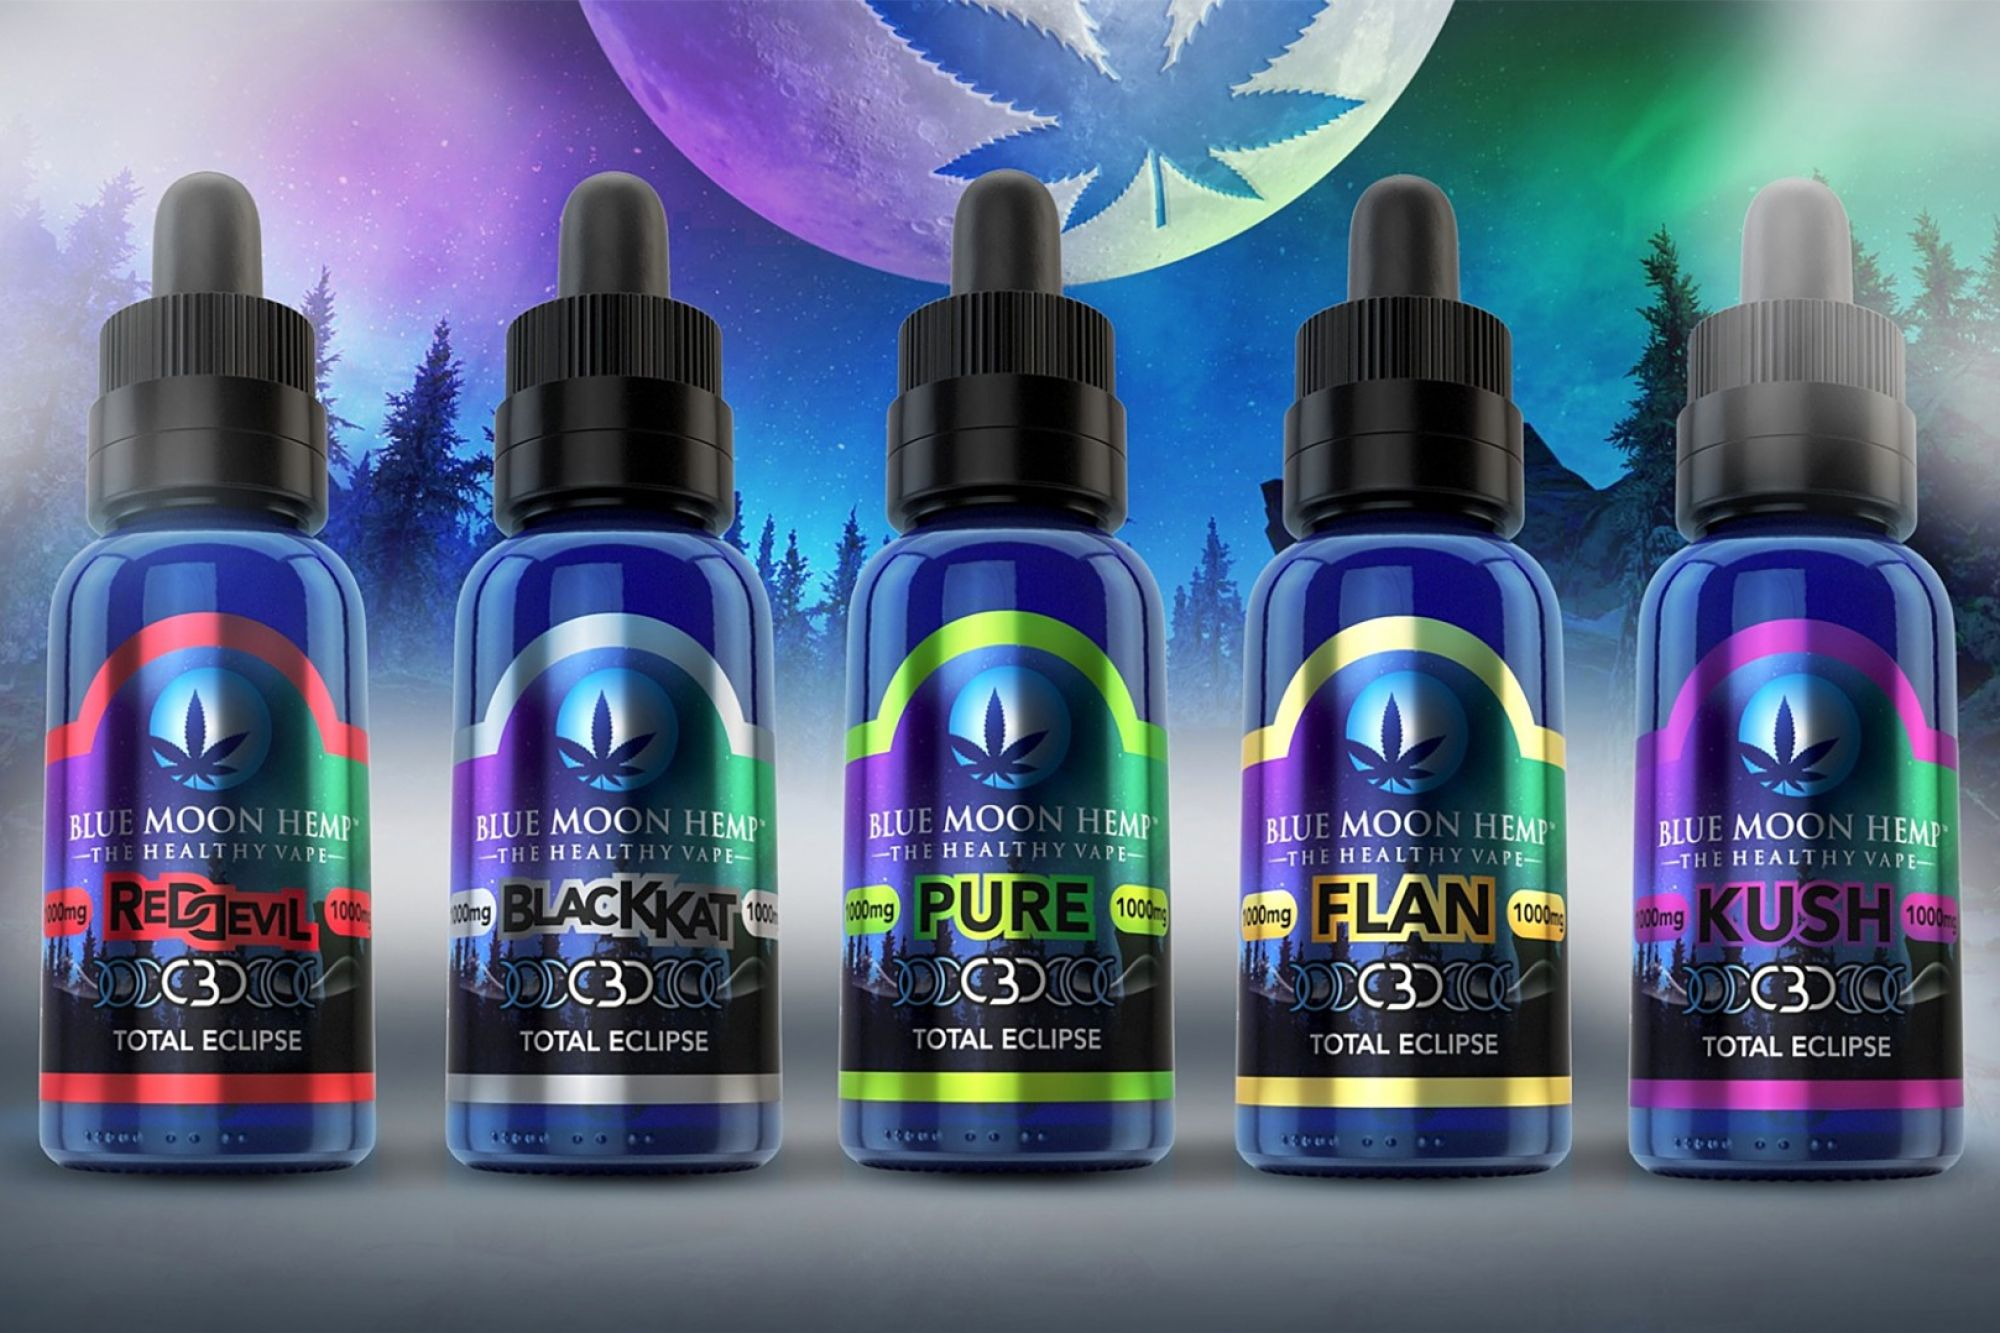 Blue Moon Hemp cbd vape juice review 2021